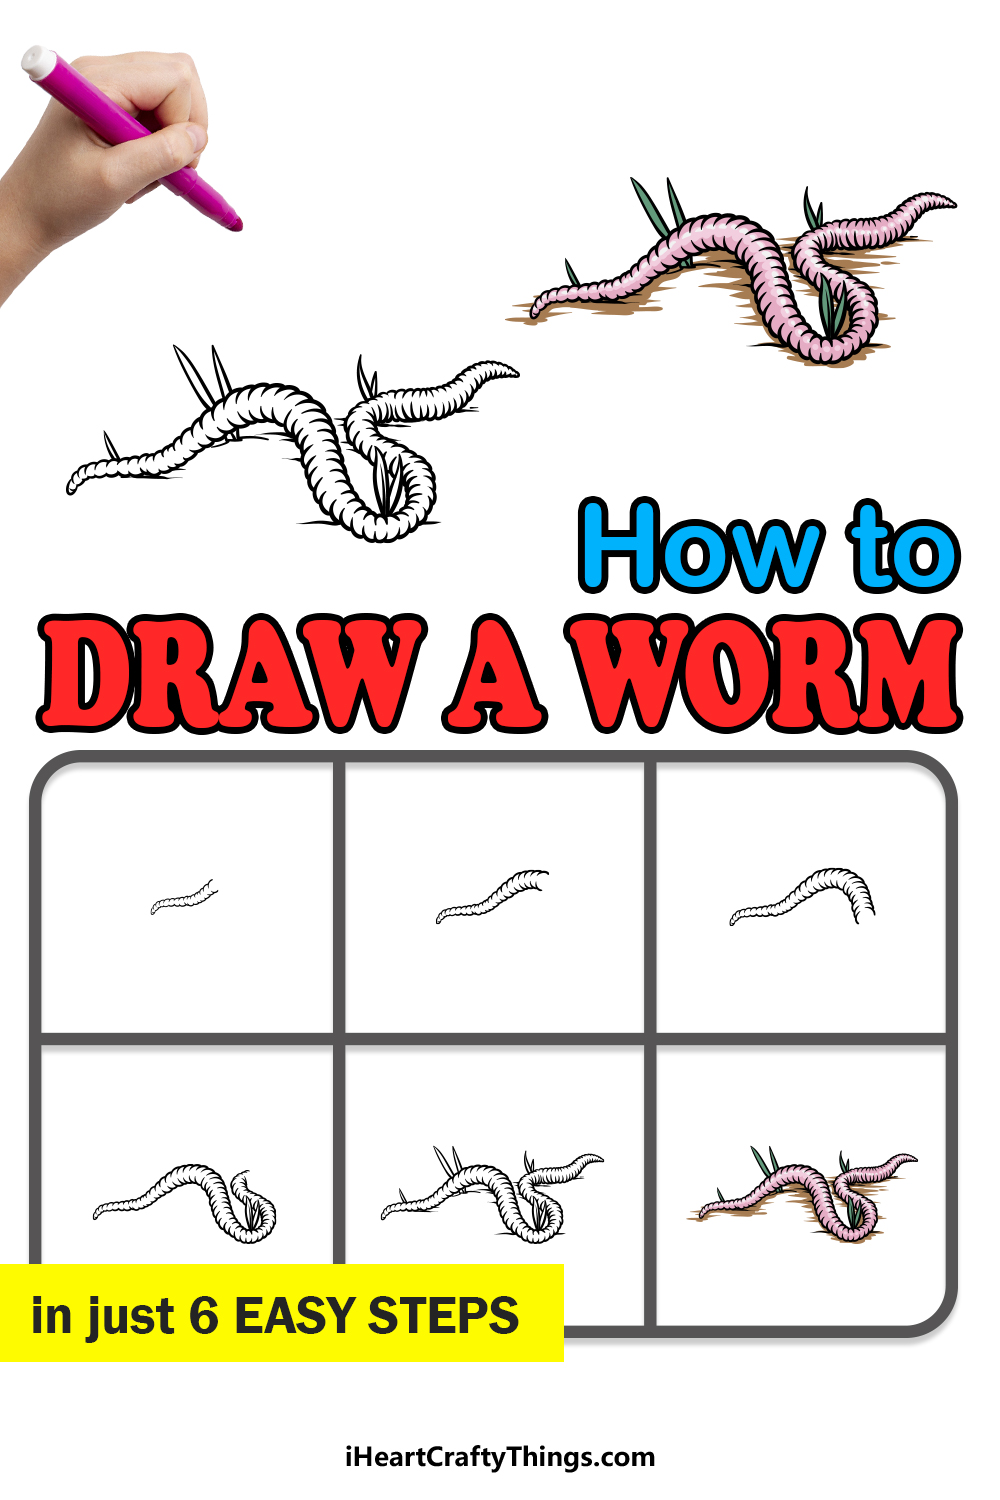 how to draw a worm in 6 easy steps